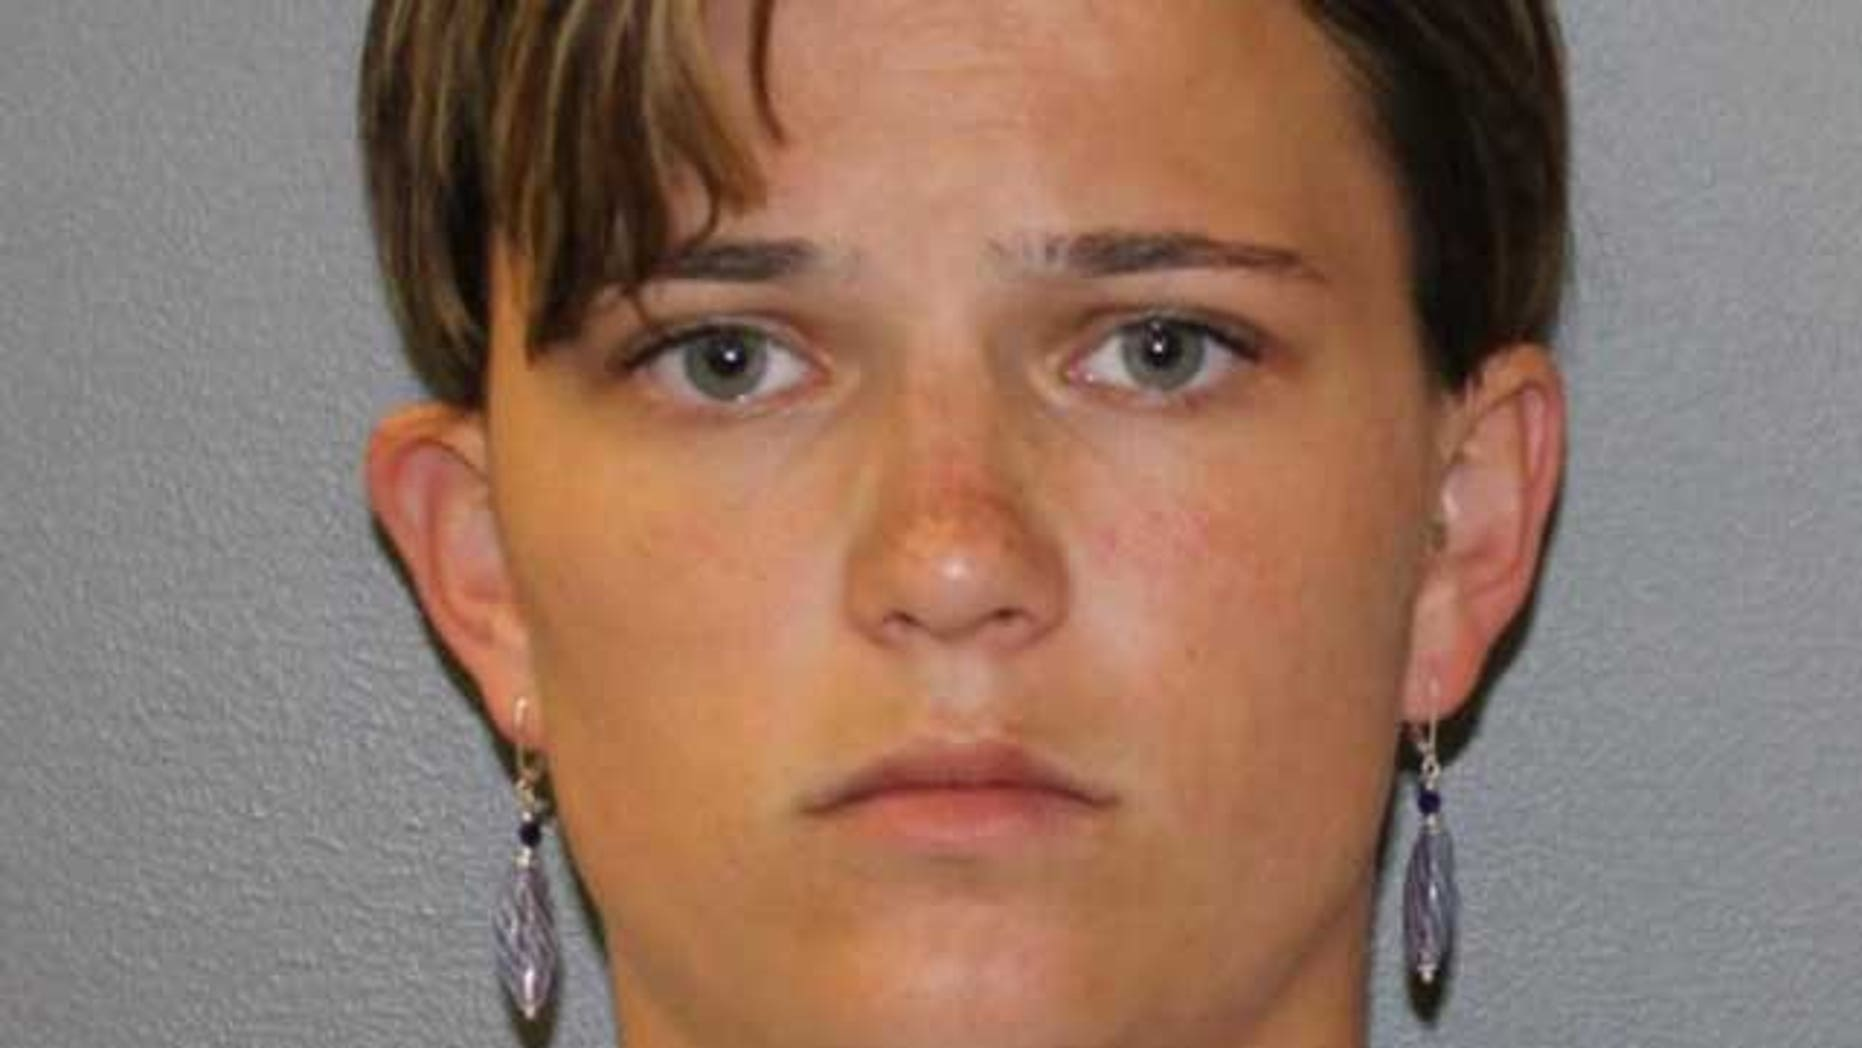 This undated photo provided by the Hamden Police Department shows Danielle Shea of Quincy, Mass.